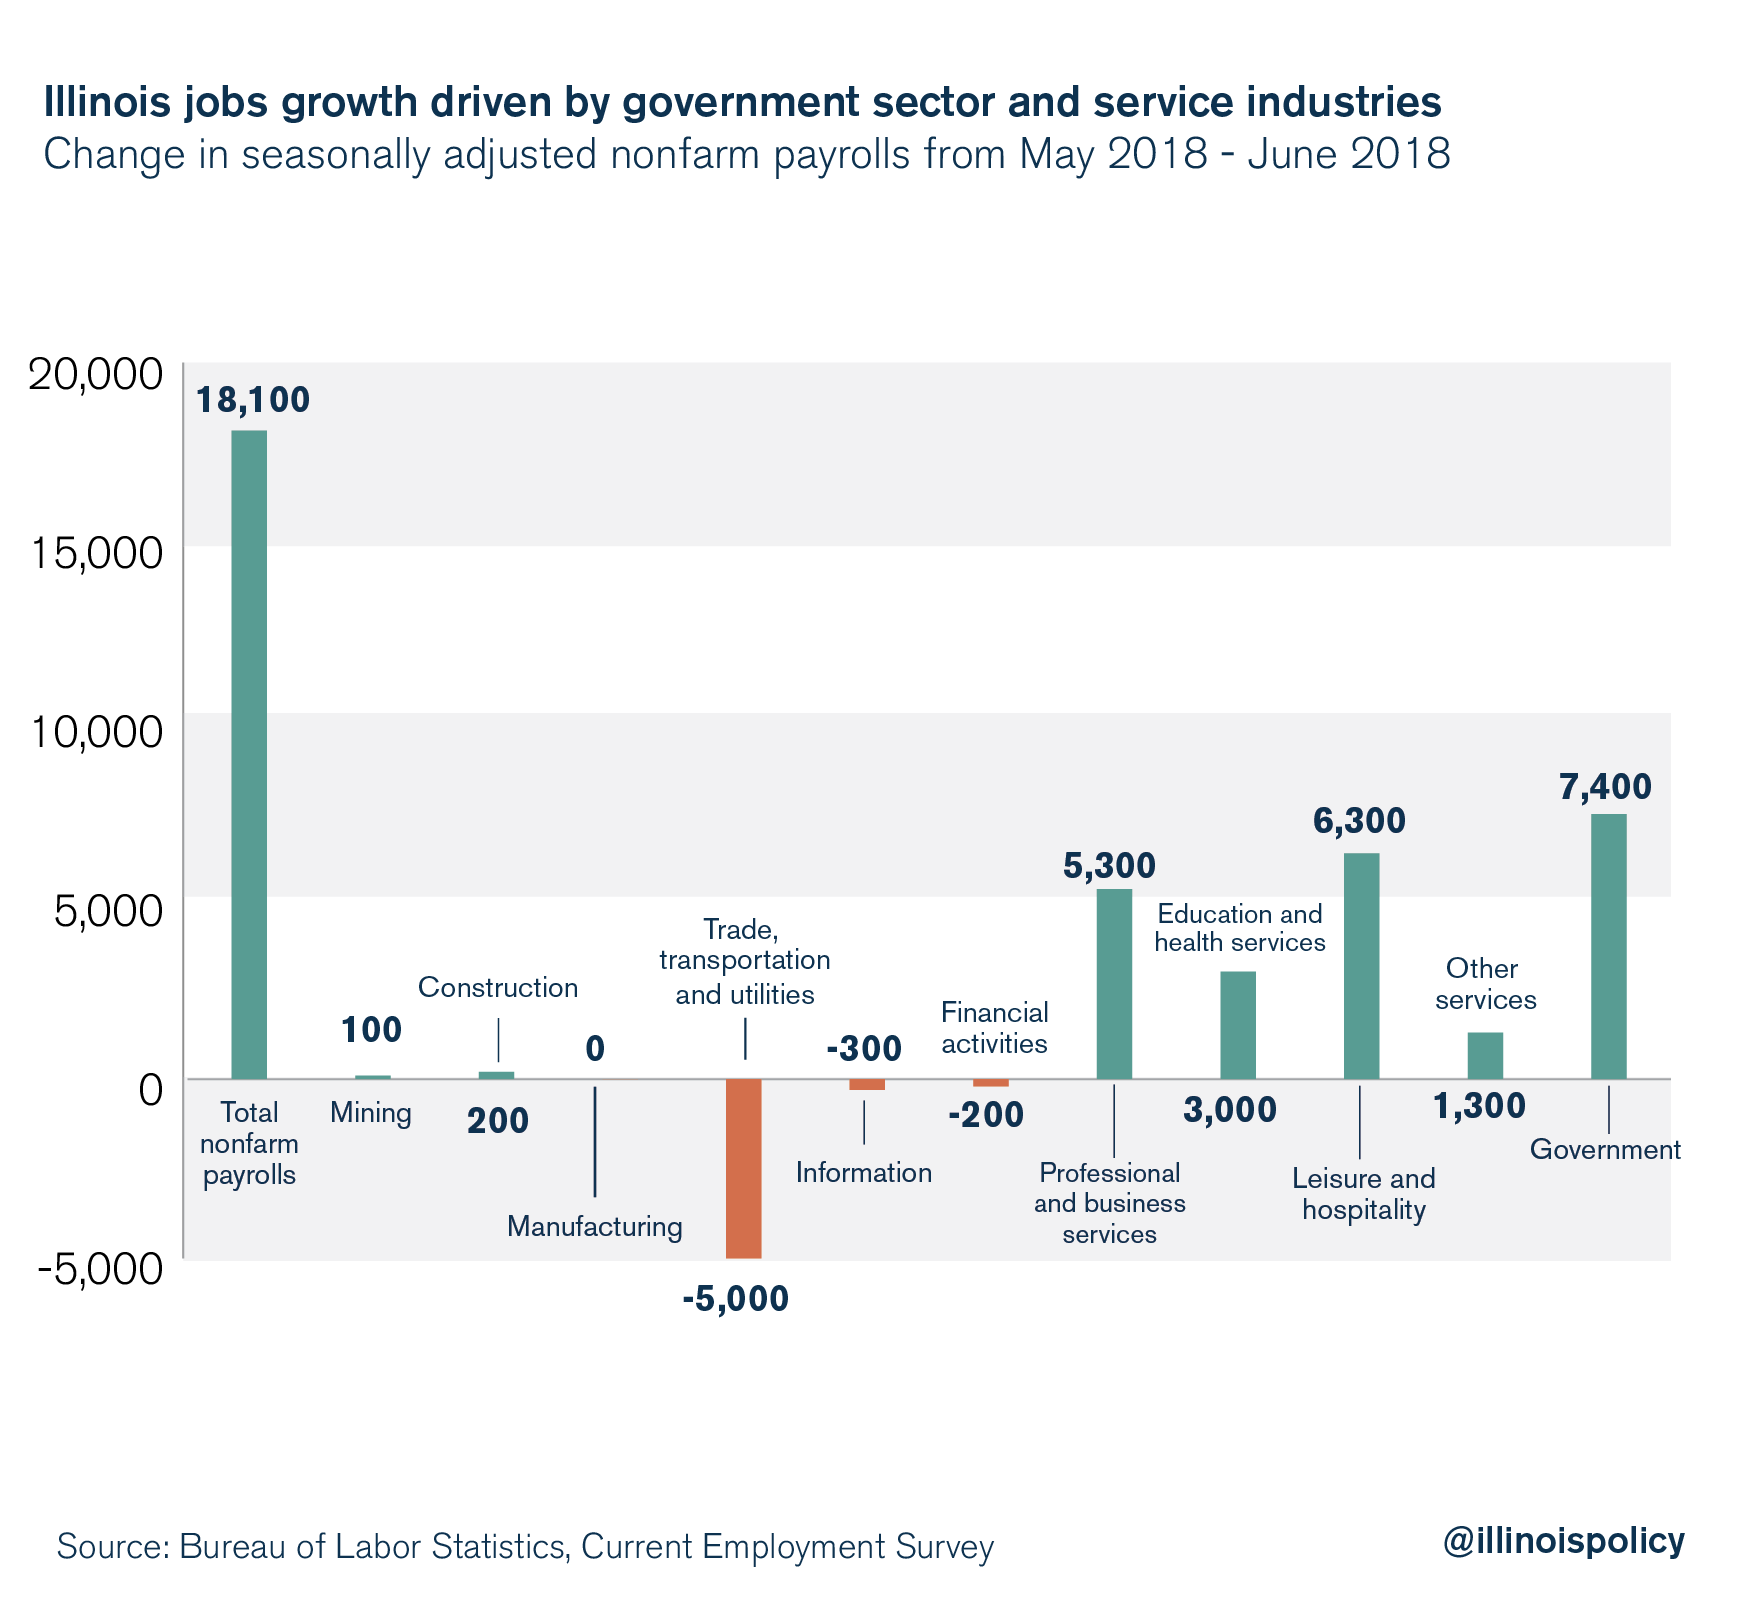 Illinois jobs growth driven by government sector and service industries